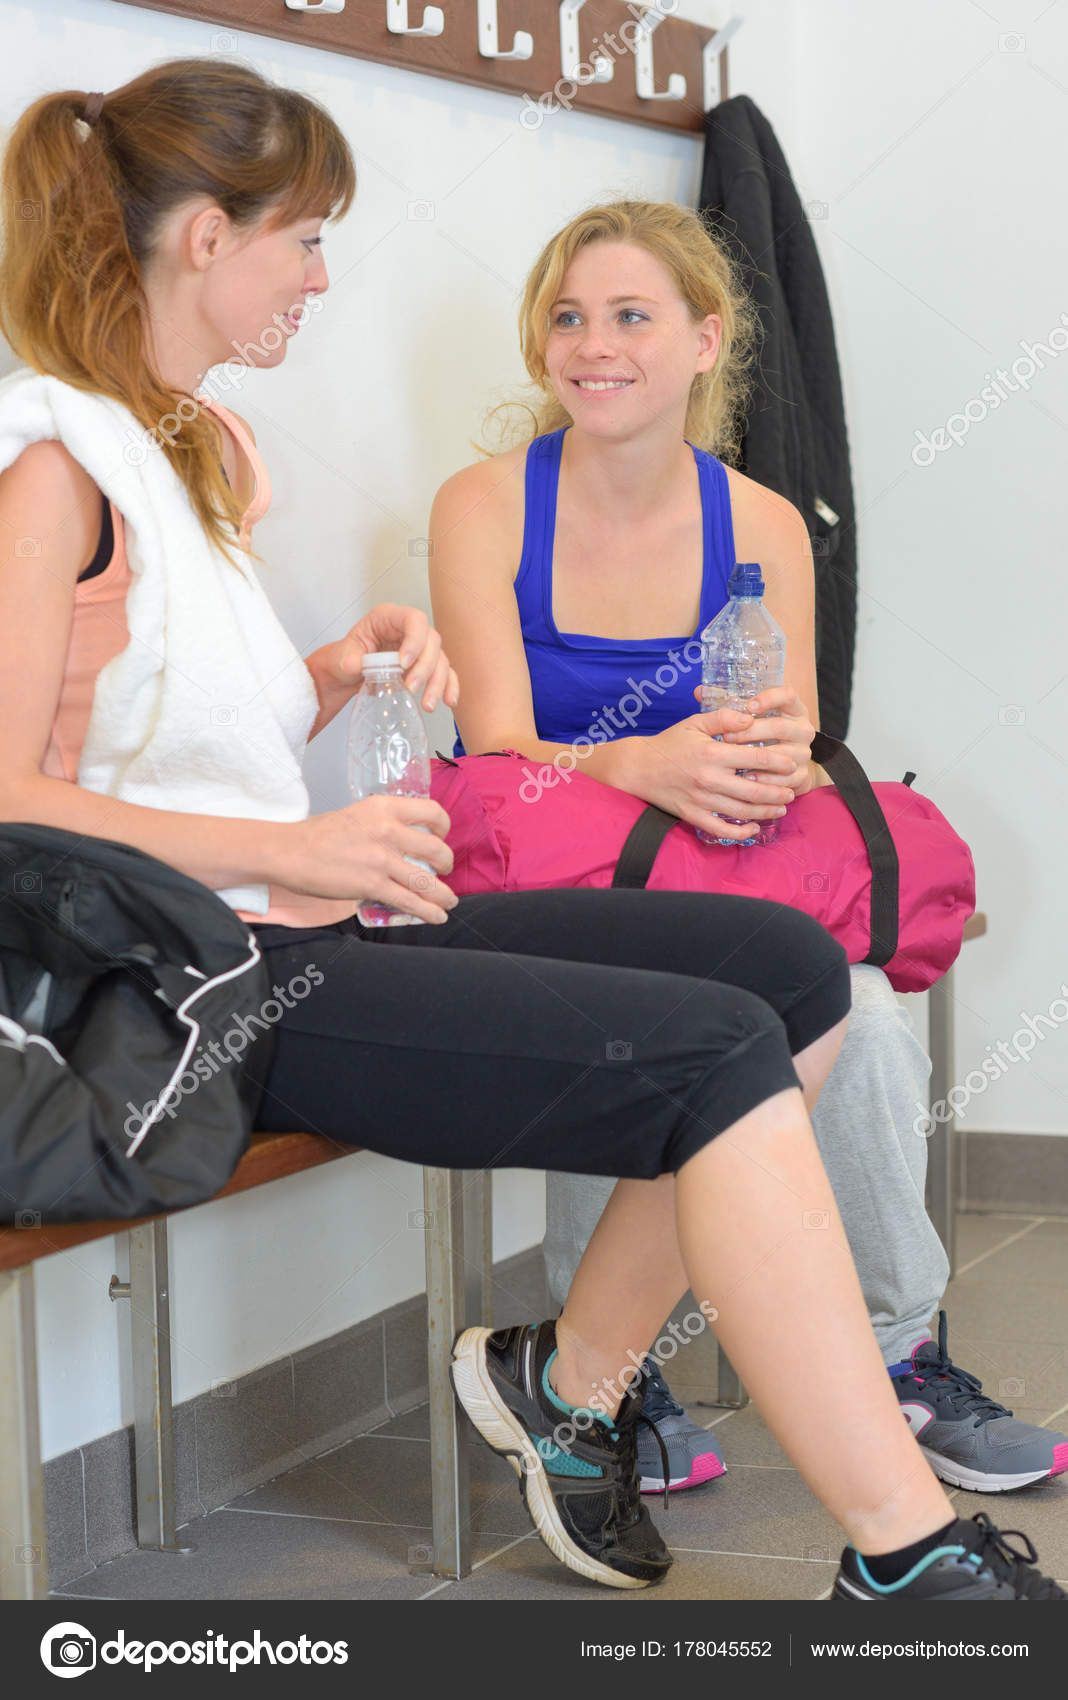 changing room girls Young